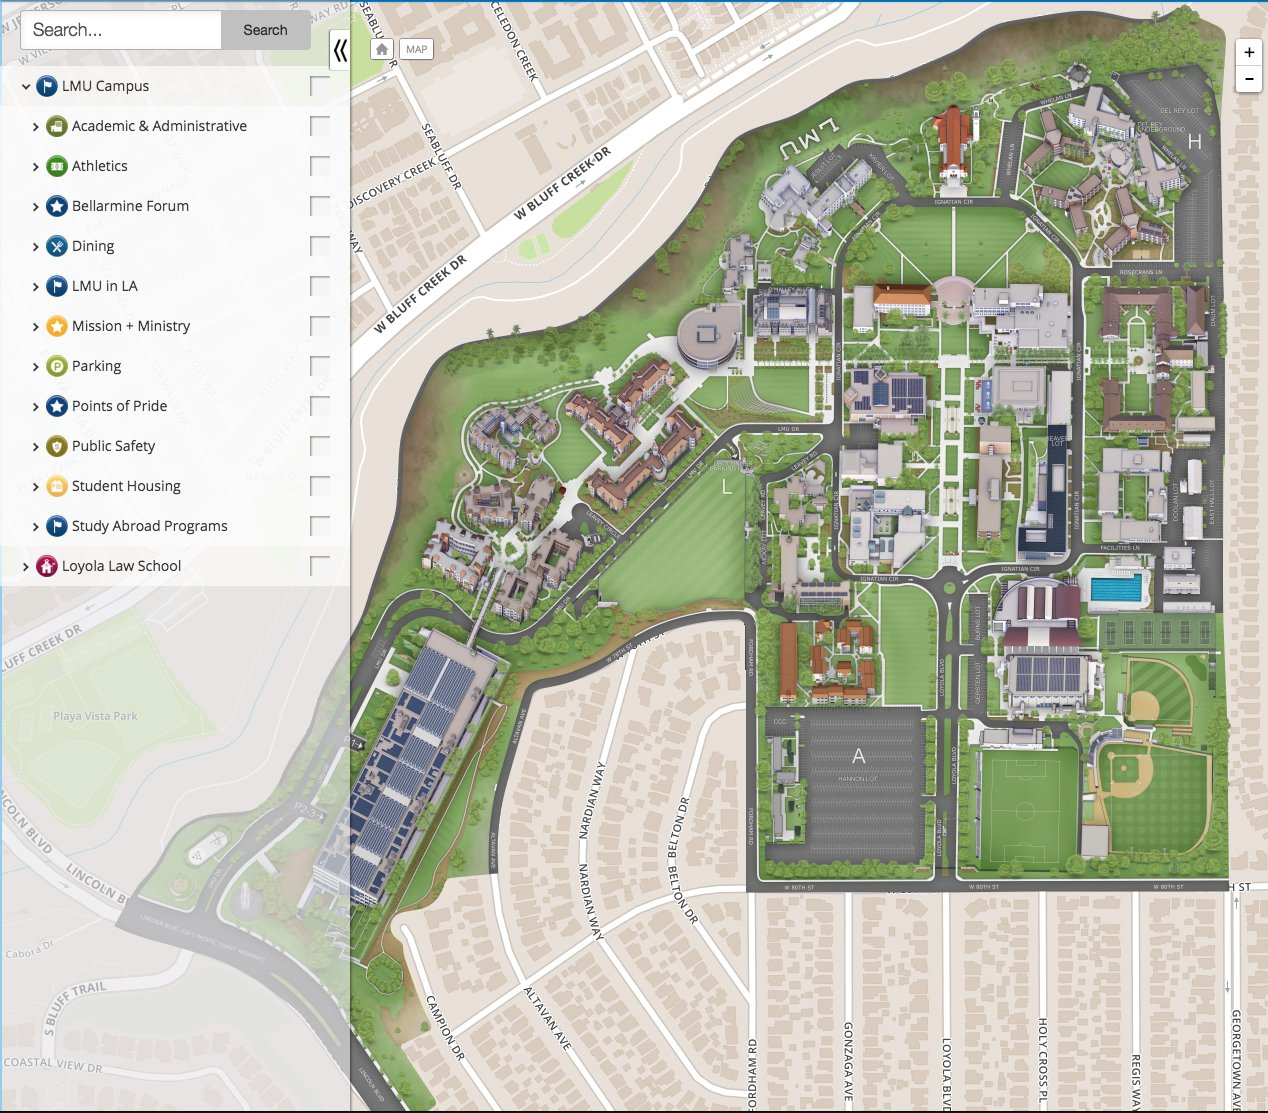 Loyola Law School Campus Map.List Of Synonyms And Antonyms Of The Word Lmu Map